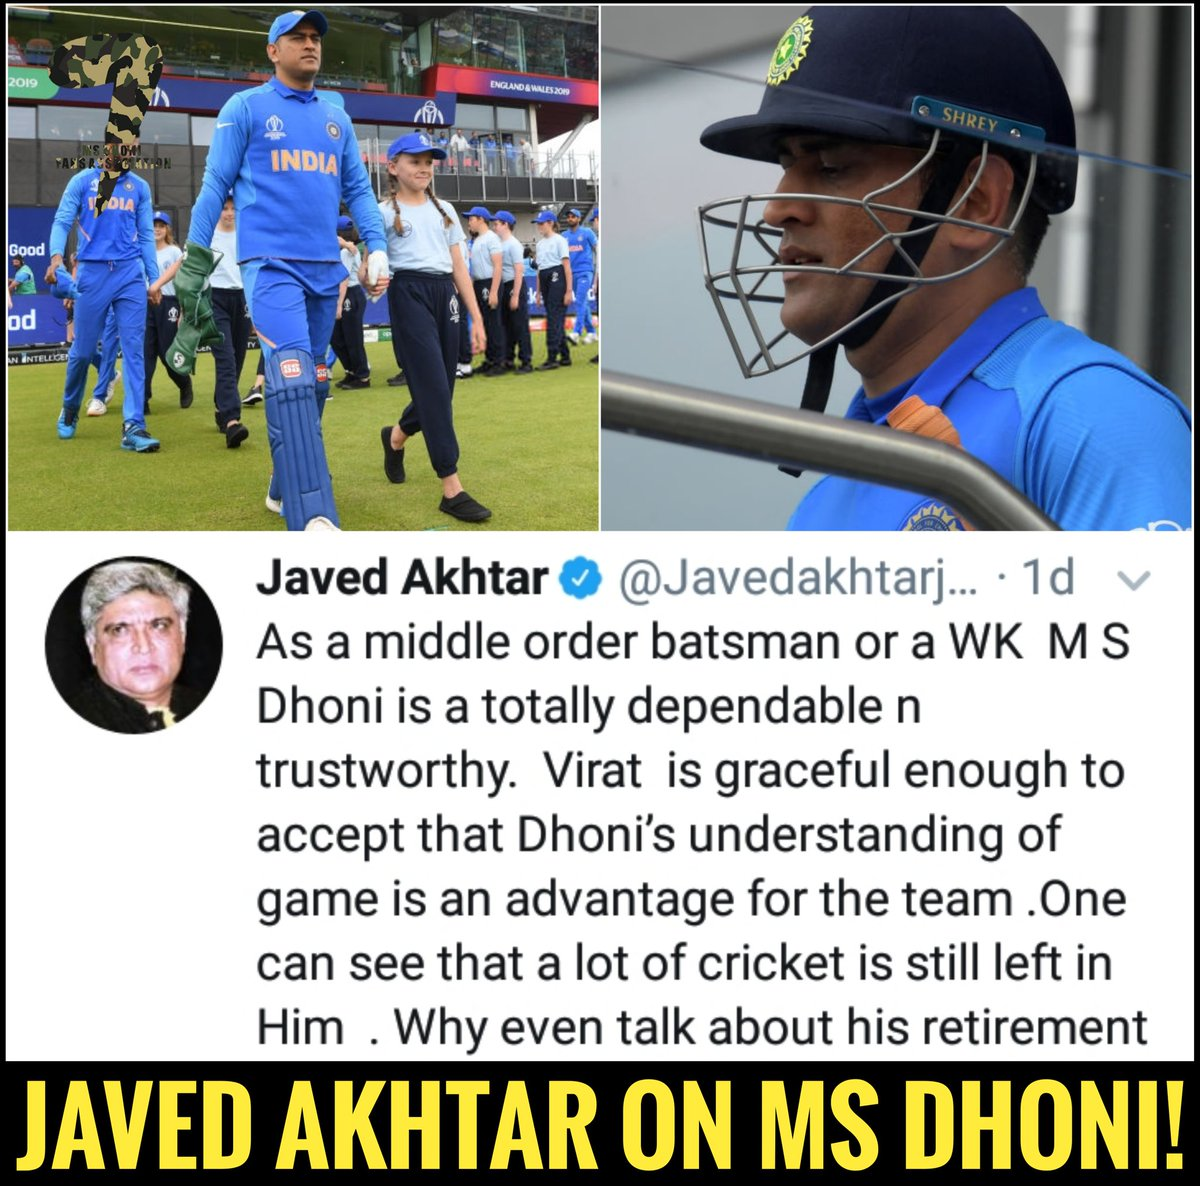 .@msdhoni is totally dependable and trustworthy. His understanding of game is an advantage for the team. One can still see that a lot of cricket is still left in him. Why even talk about his retirement.  - Javed Akhtar @Javedakhtarjadu   #MSDhoni #DhoniAtCWC19 #Dhoni<br>http://pic.twitter.com/rGig45Hg8o